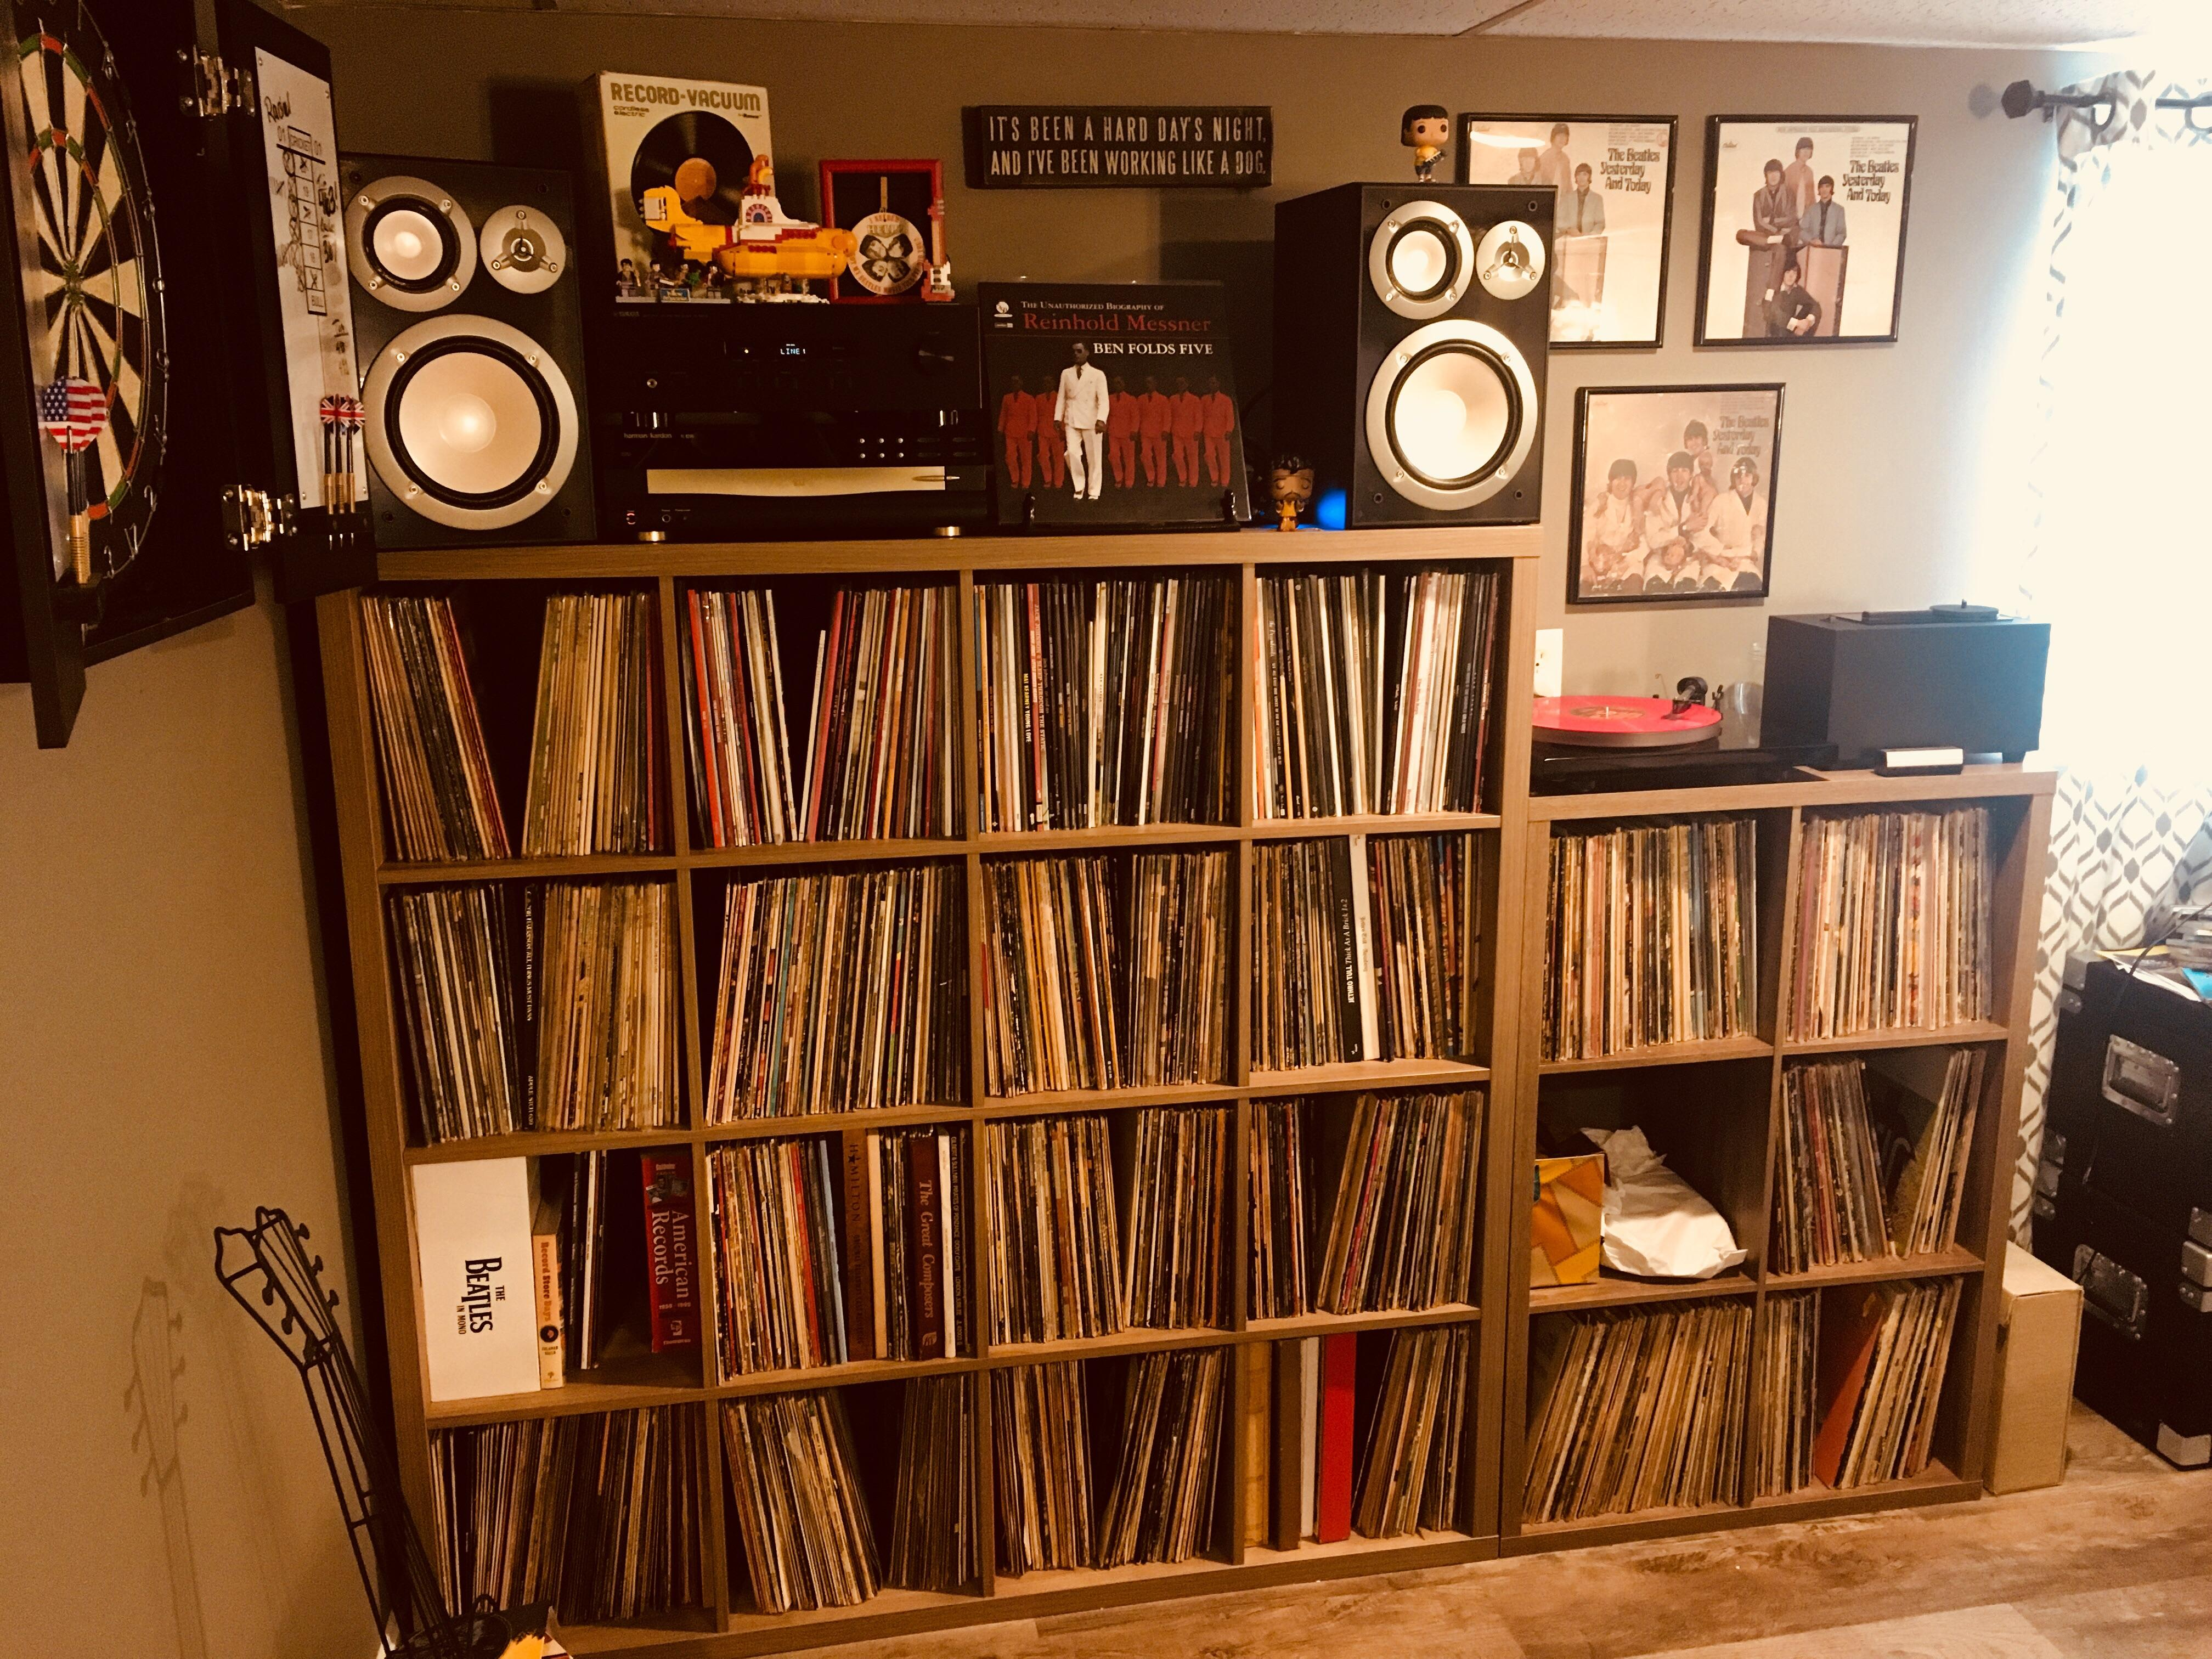 This Week's Tweaks, Including The Smaller Shelves On The Right